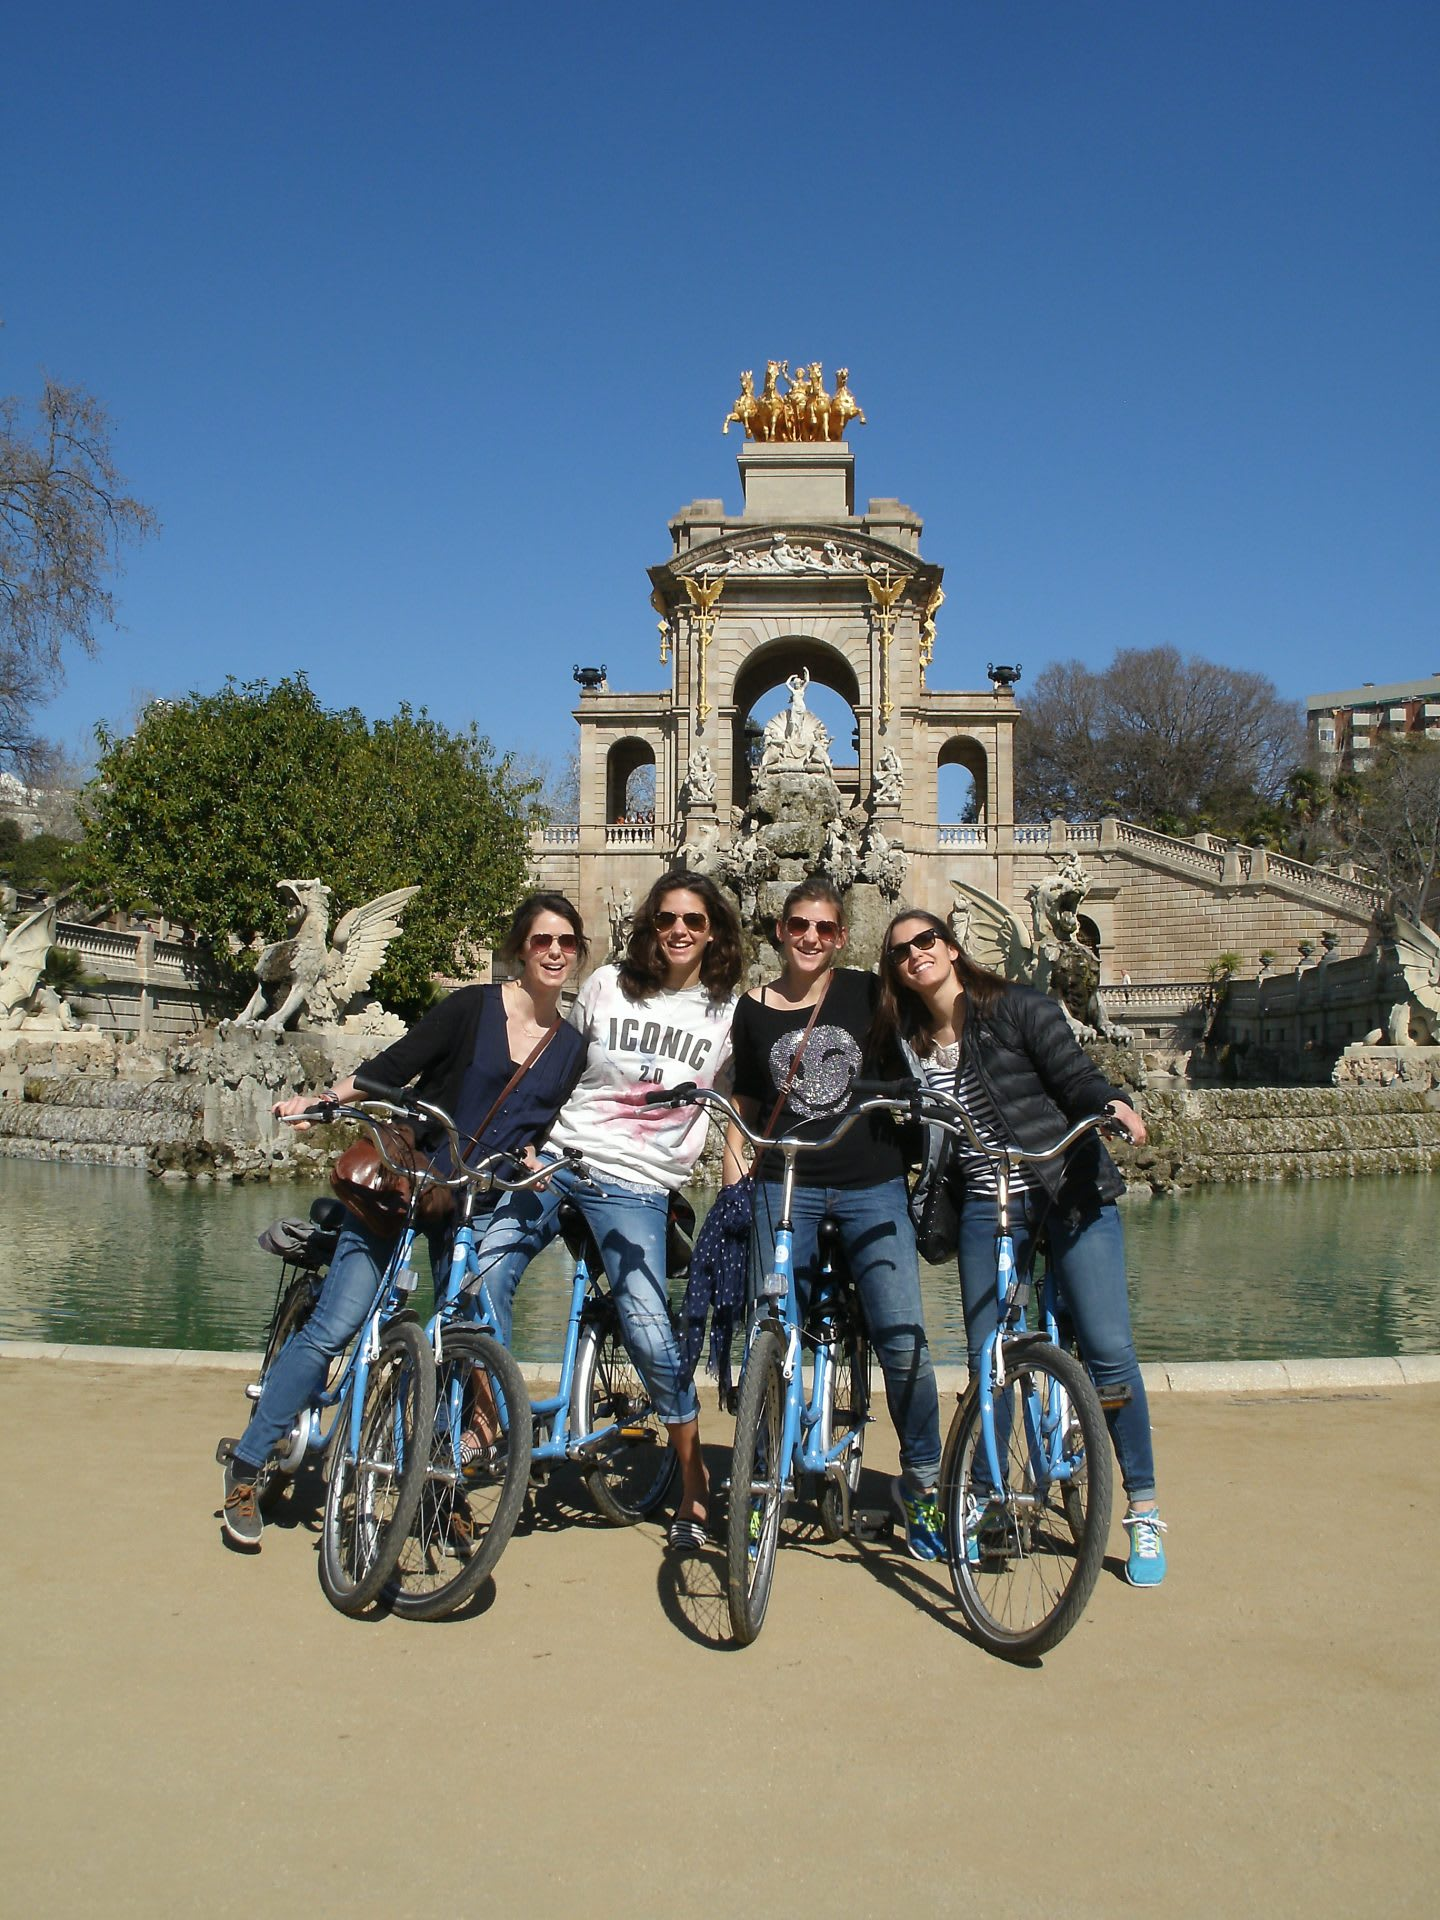 A group of friends sit together on the bicycles in front of a fountain in a park. friendship, bonding, guided tour, outdoors